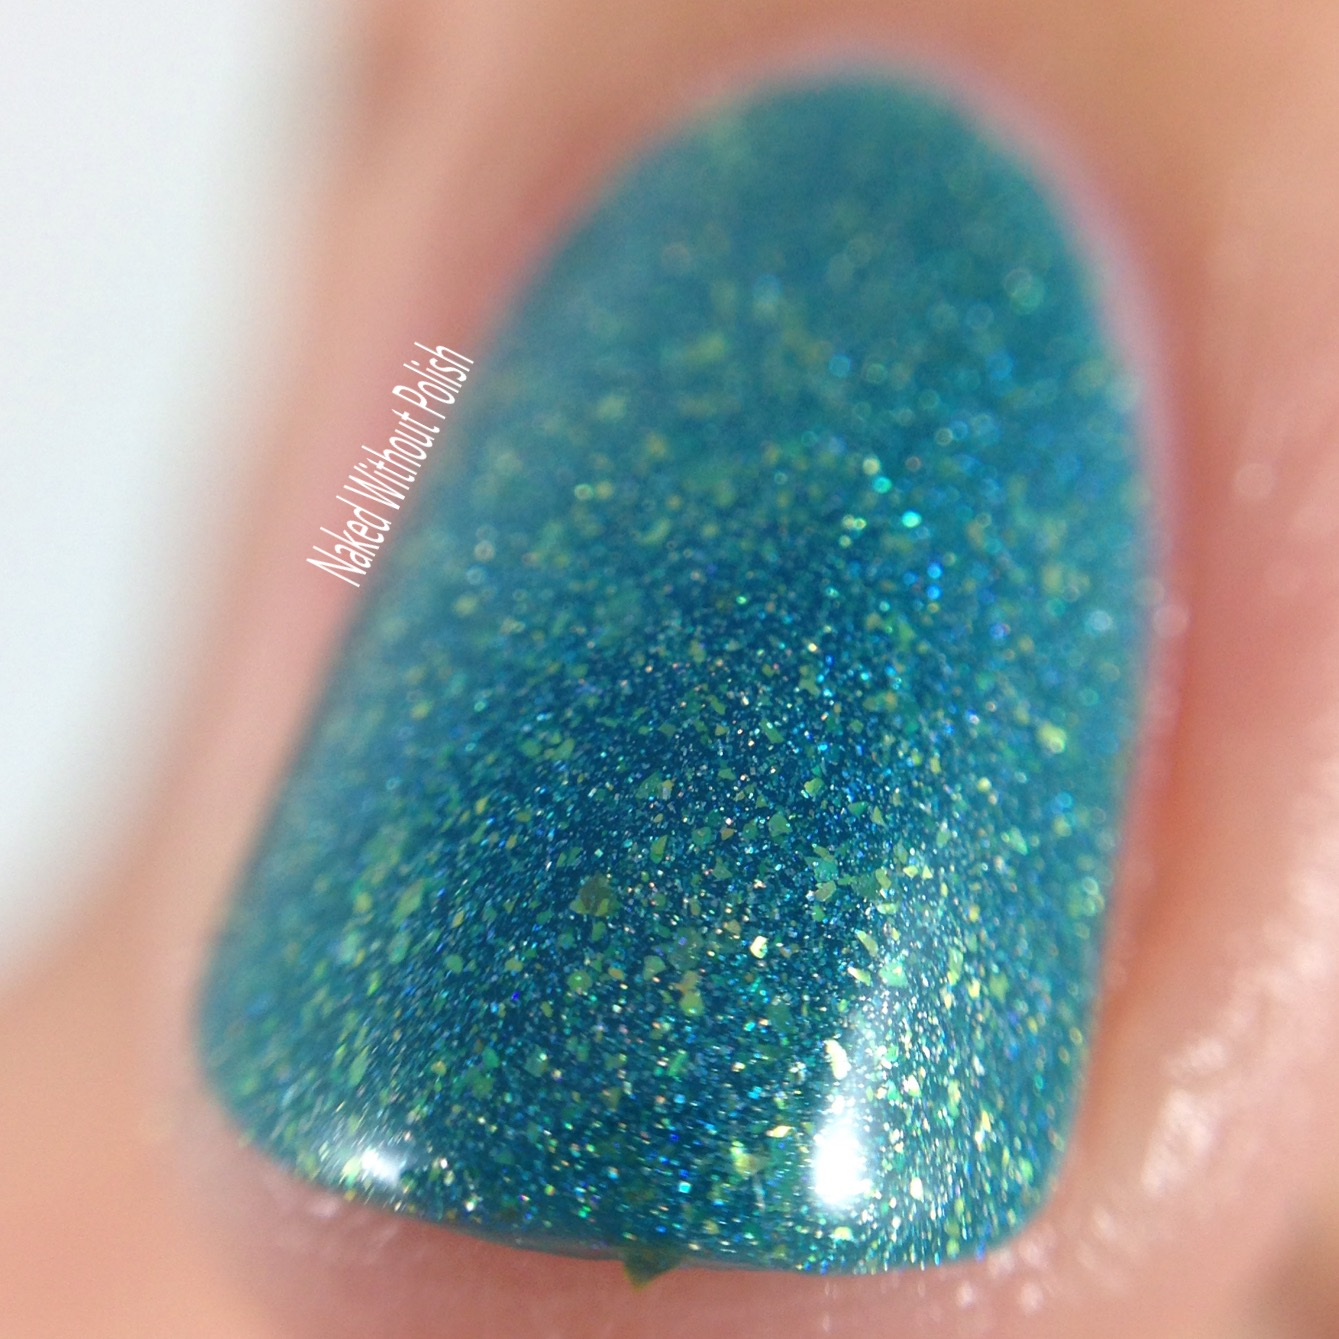 Turtle-Tootsie-Polishes-Summer-Dreams-Ripped-at-the-Seams-5